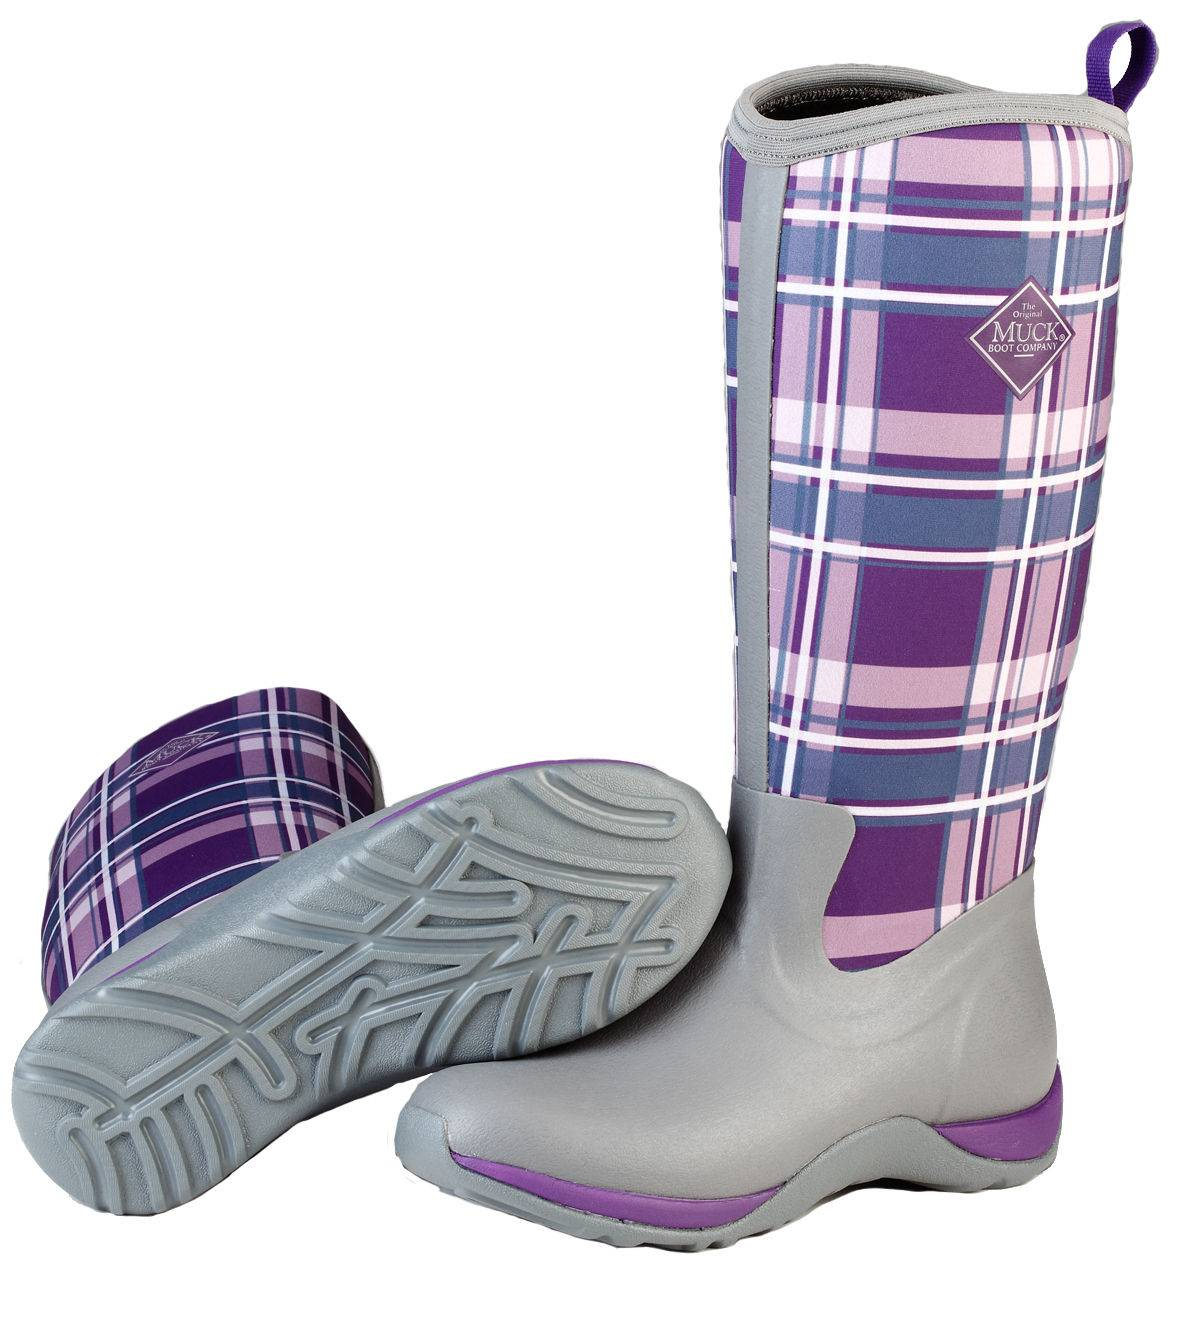 Muck Boots Women's Arctic Adventure - Gray/Acai Plaid